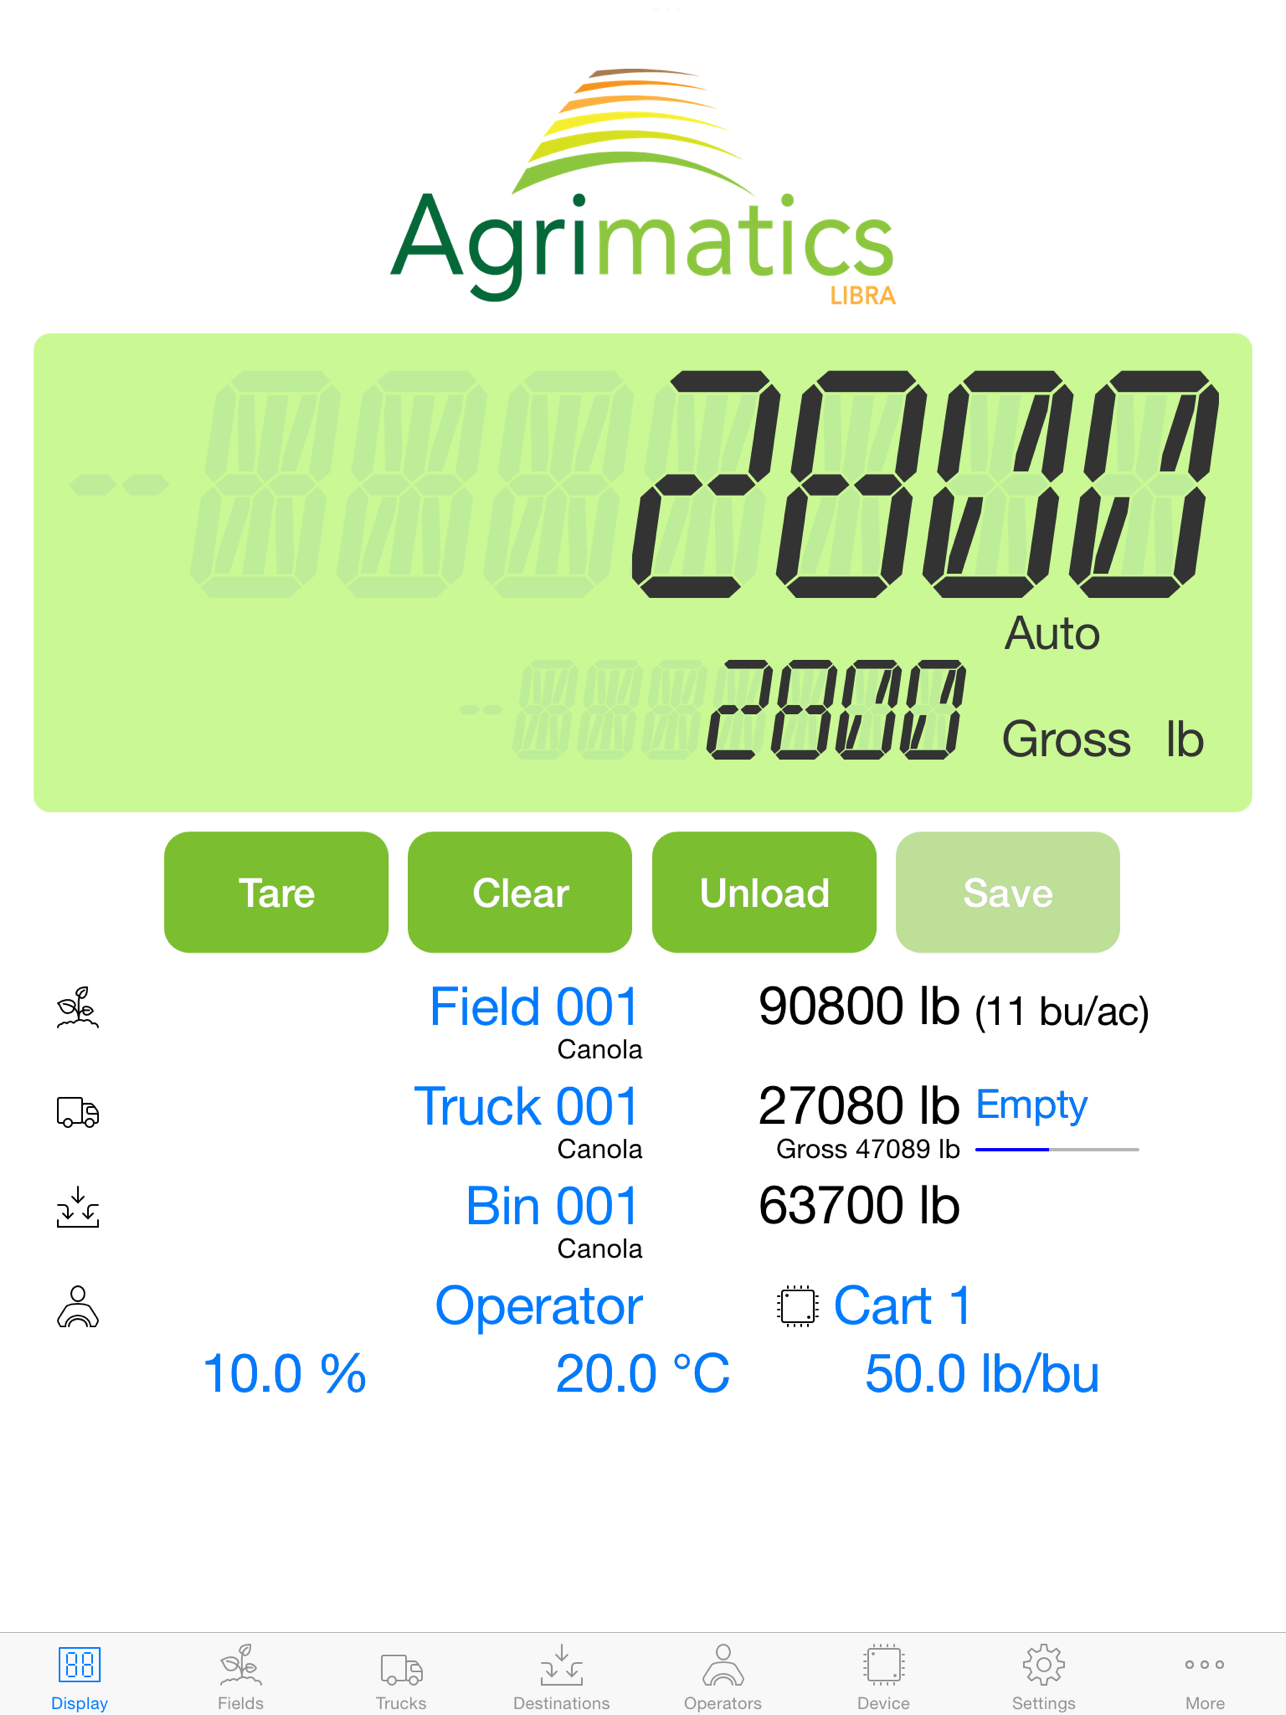 Use Agrimatics Libra Cart to track grain inventory loads on your farm.